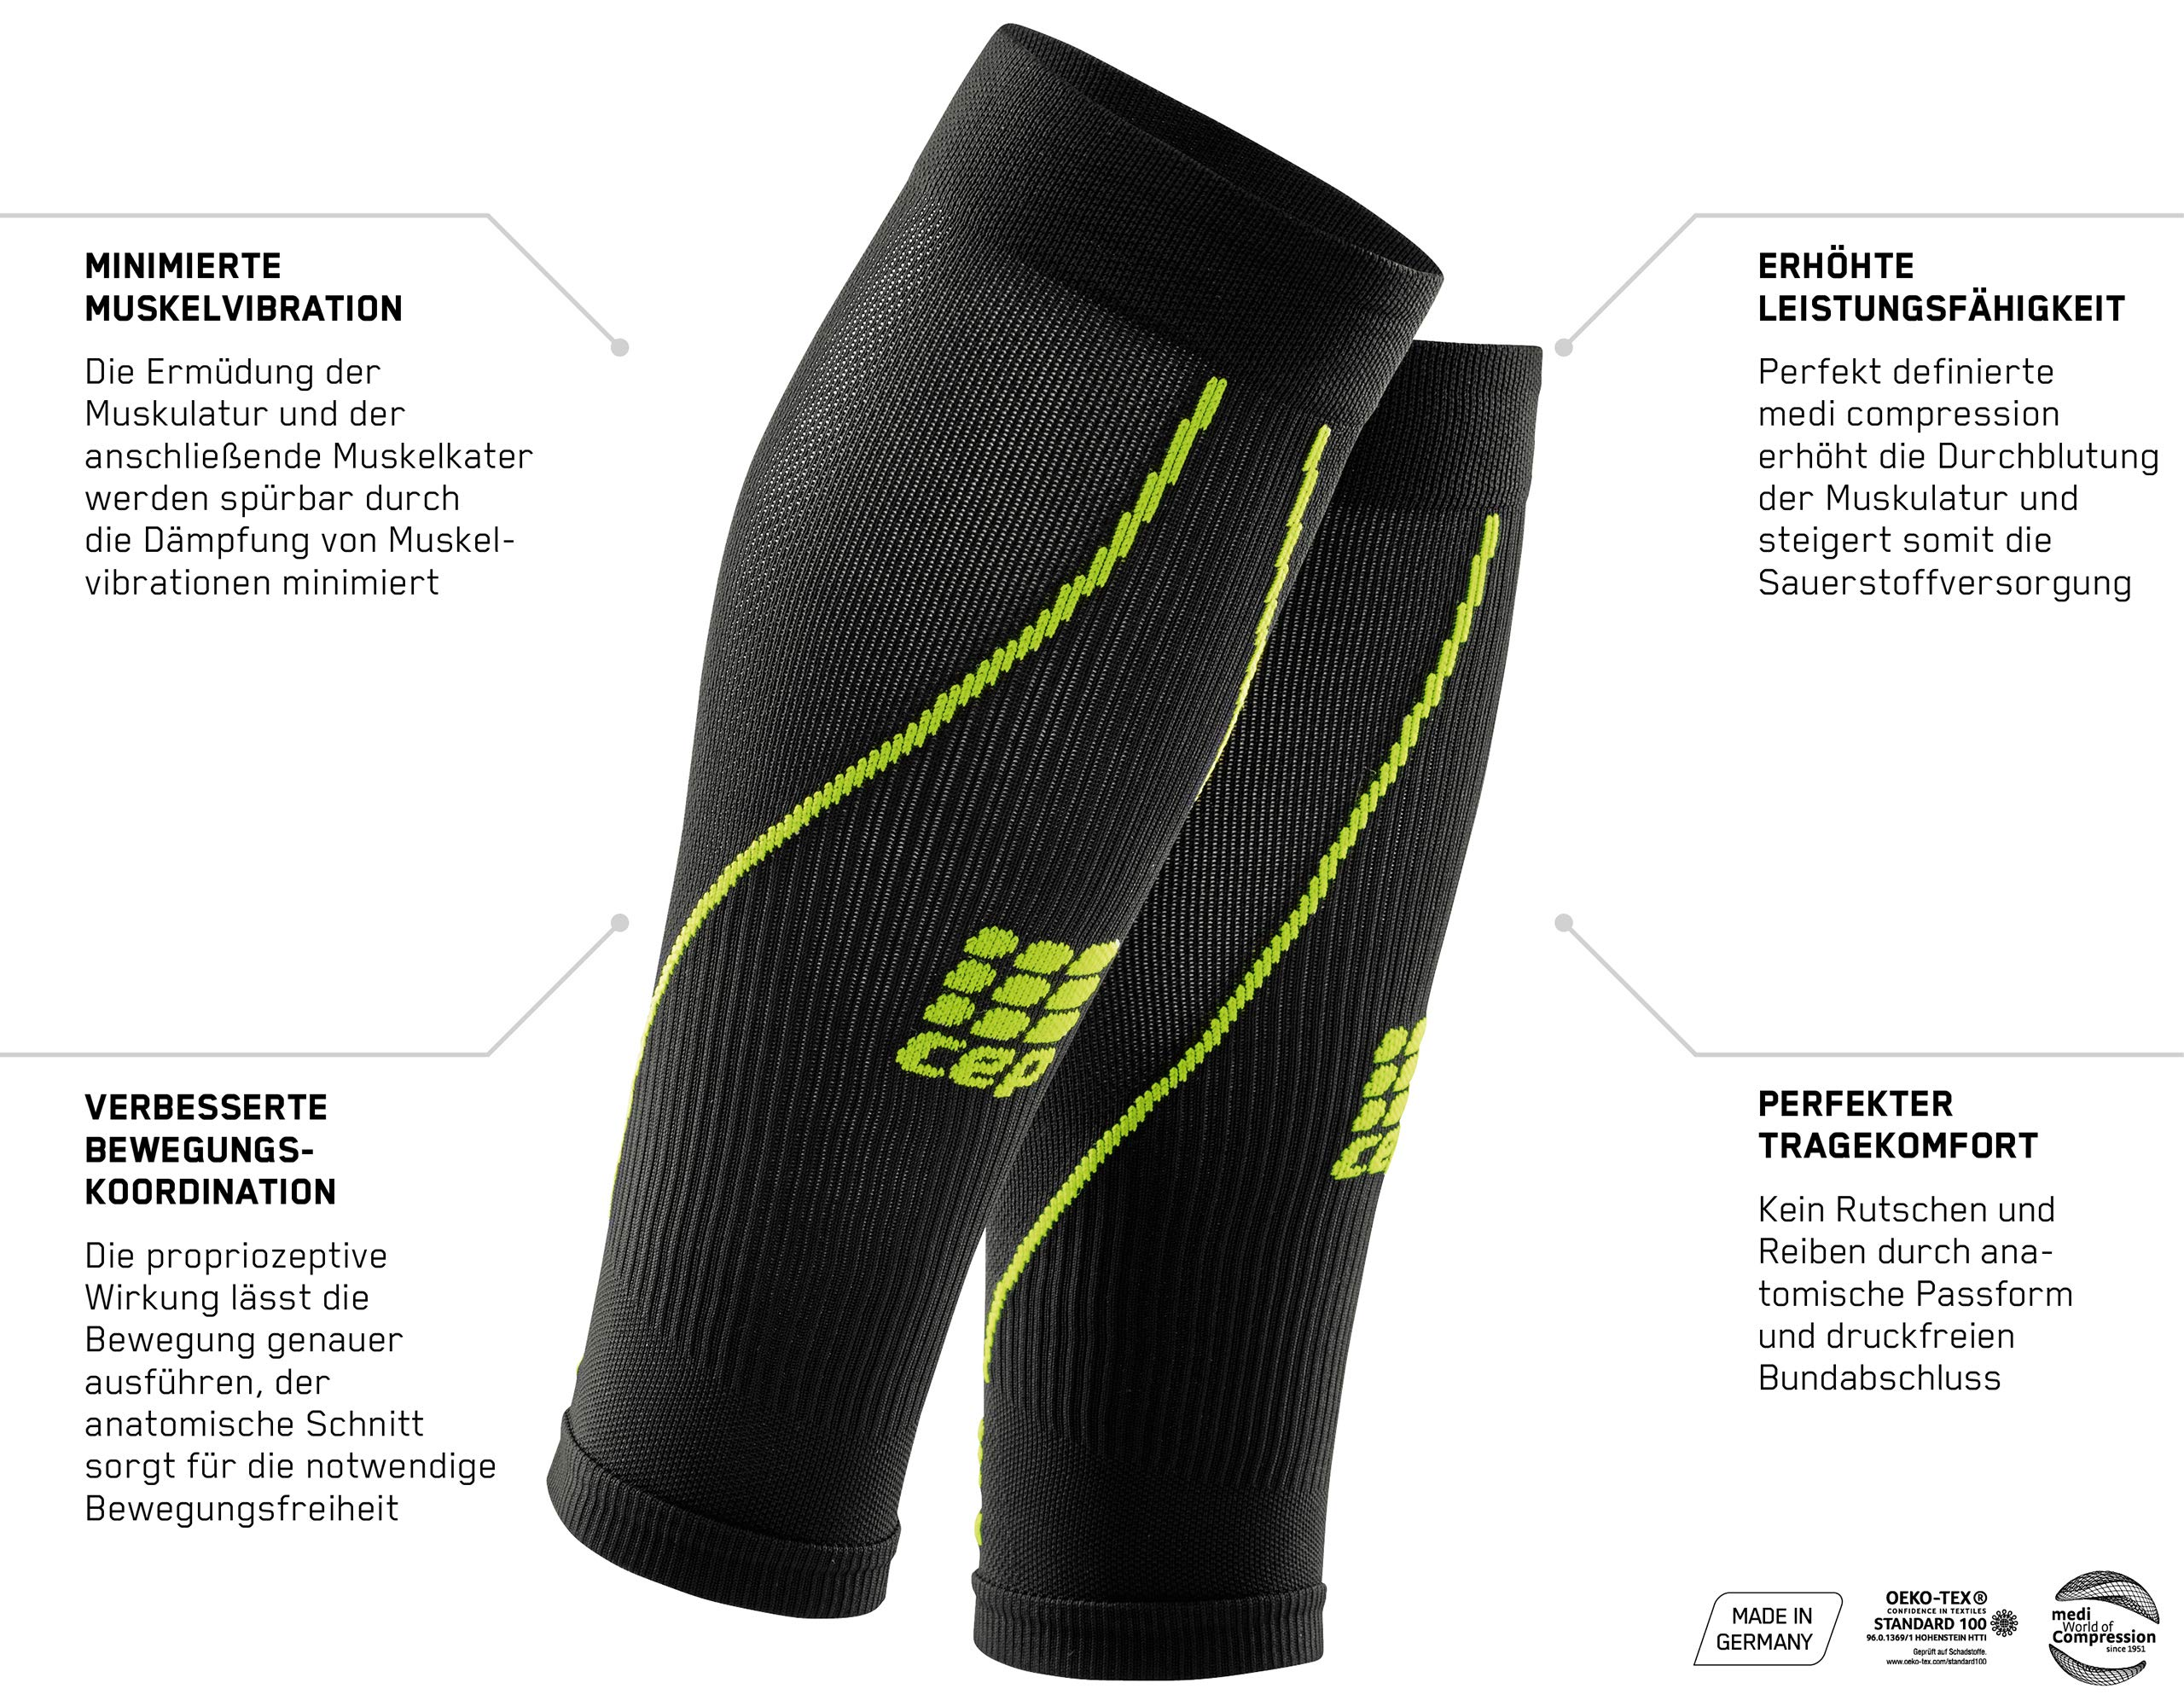 Womens Calf Compression Sleeves - CEP Running 2.0 (Black) II by CEP (Image #6)